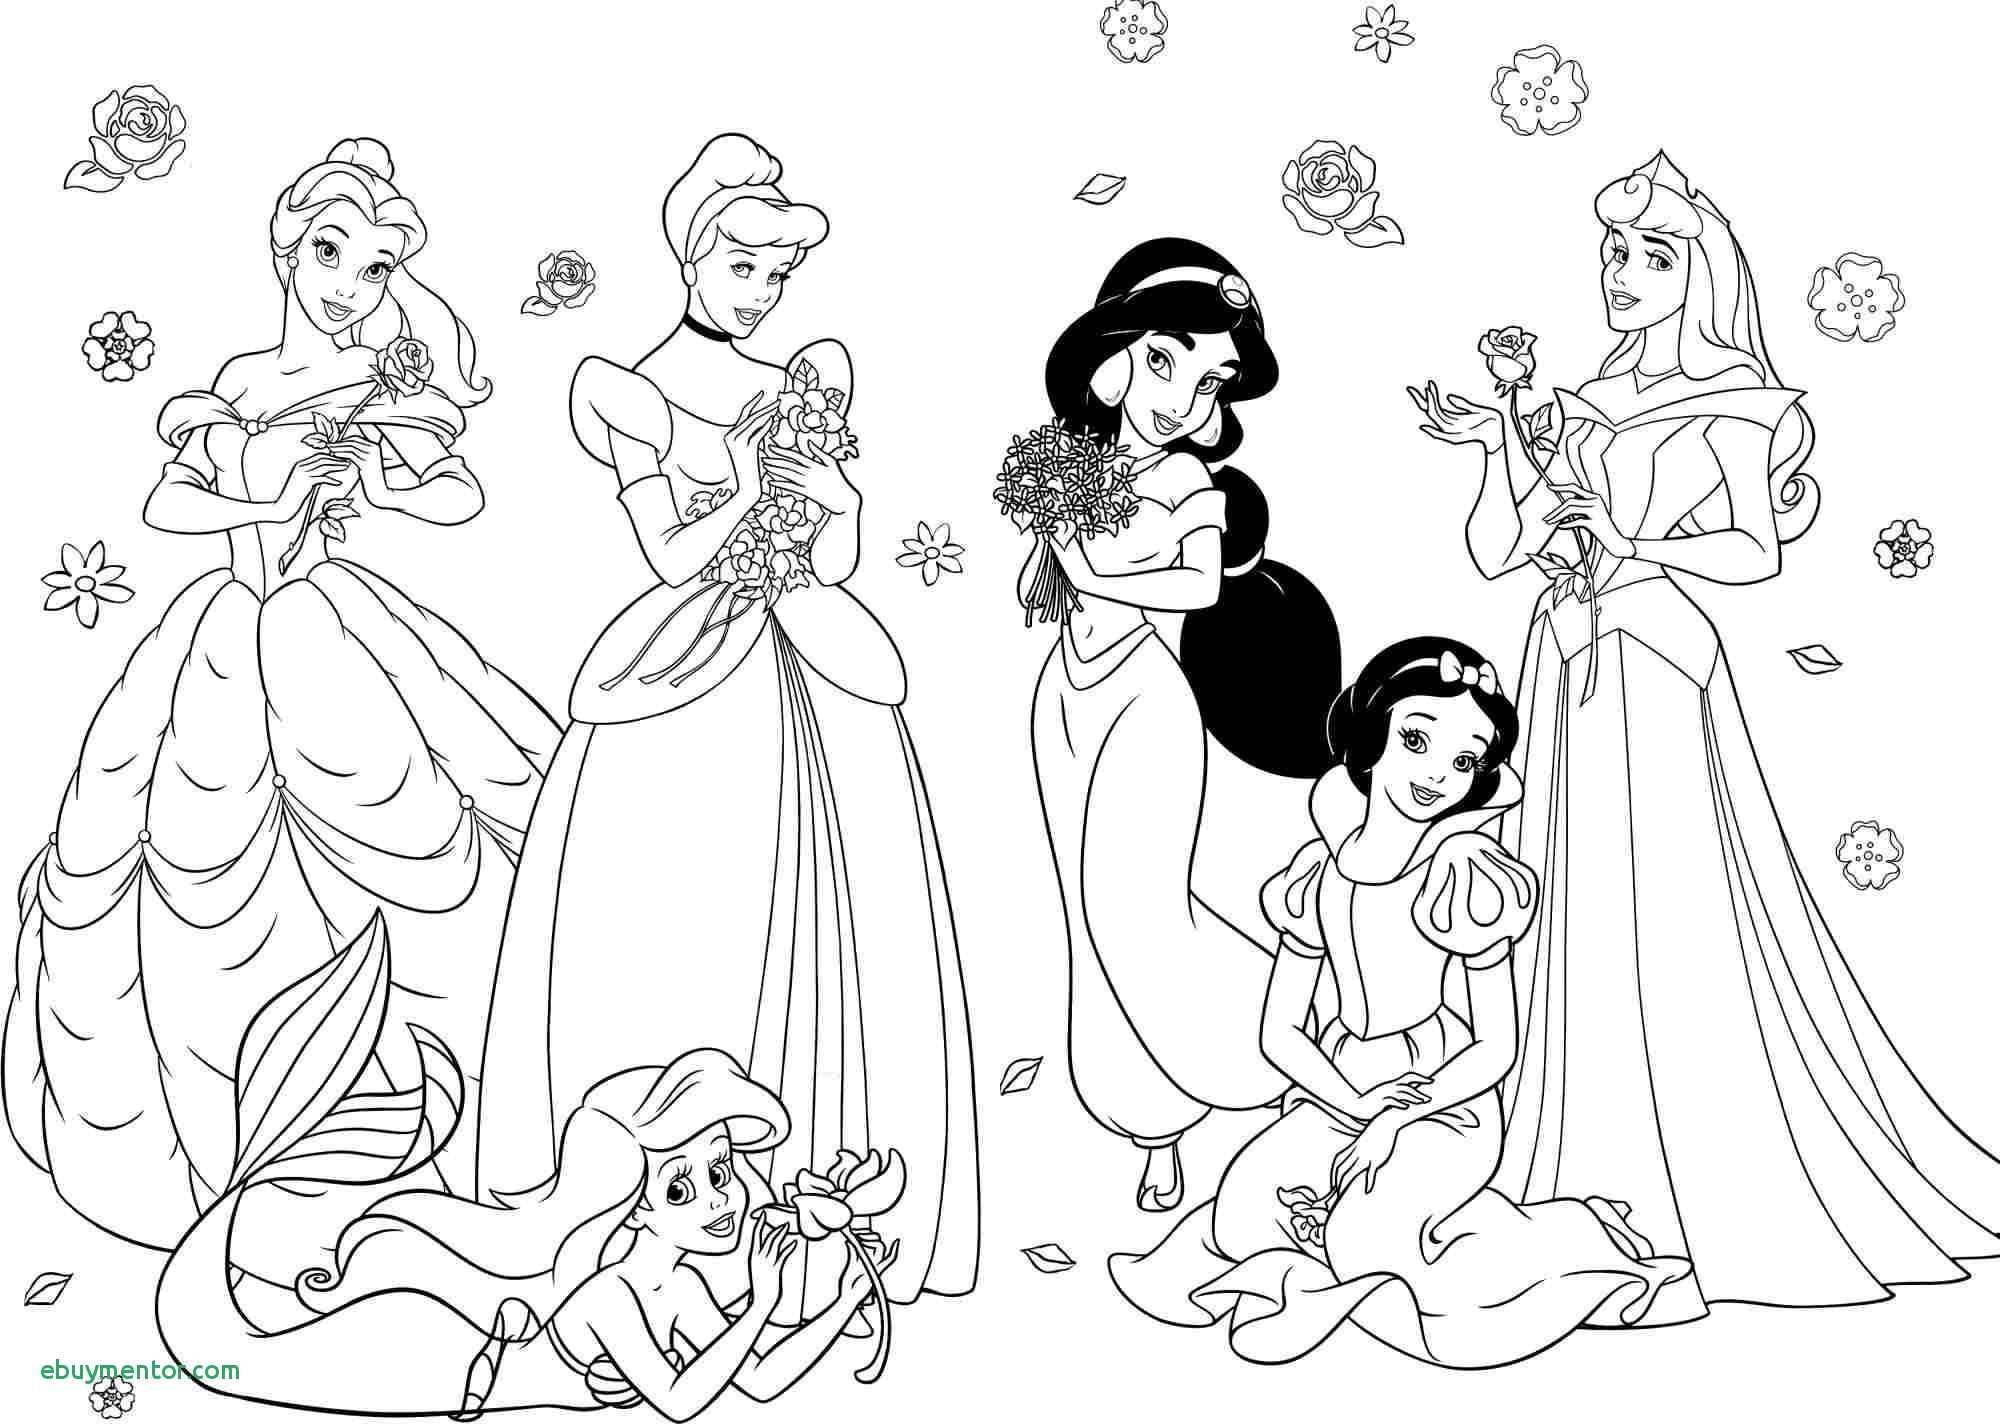 37+ All disney princess together coloring pages ideas in 2021